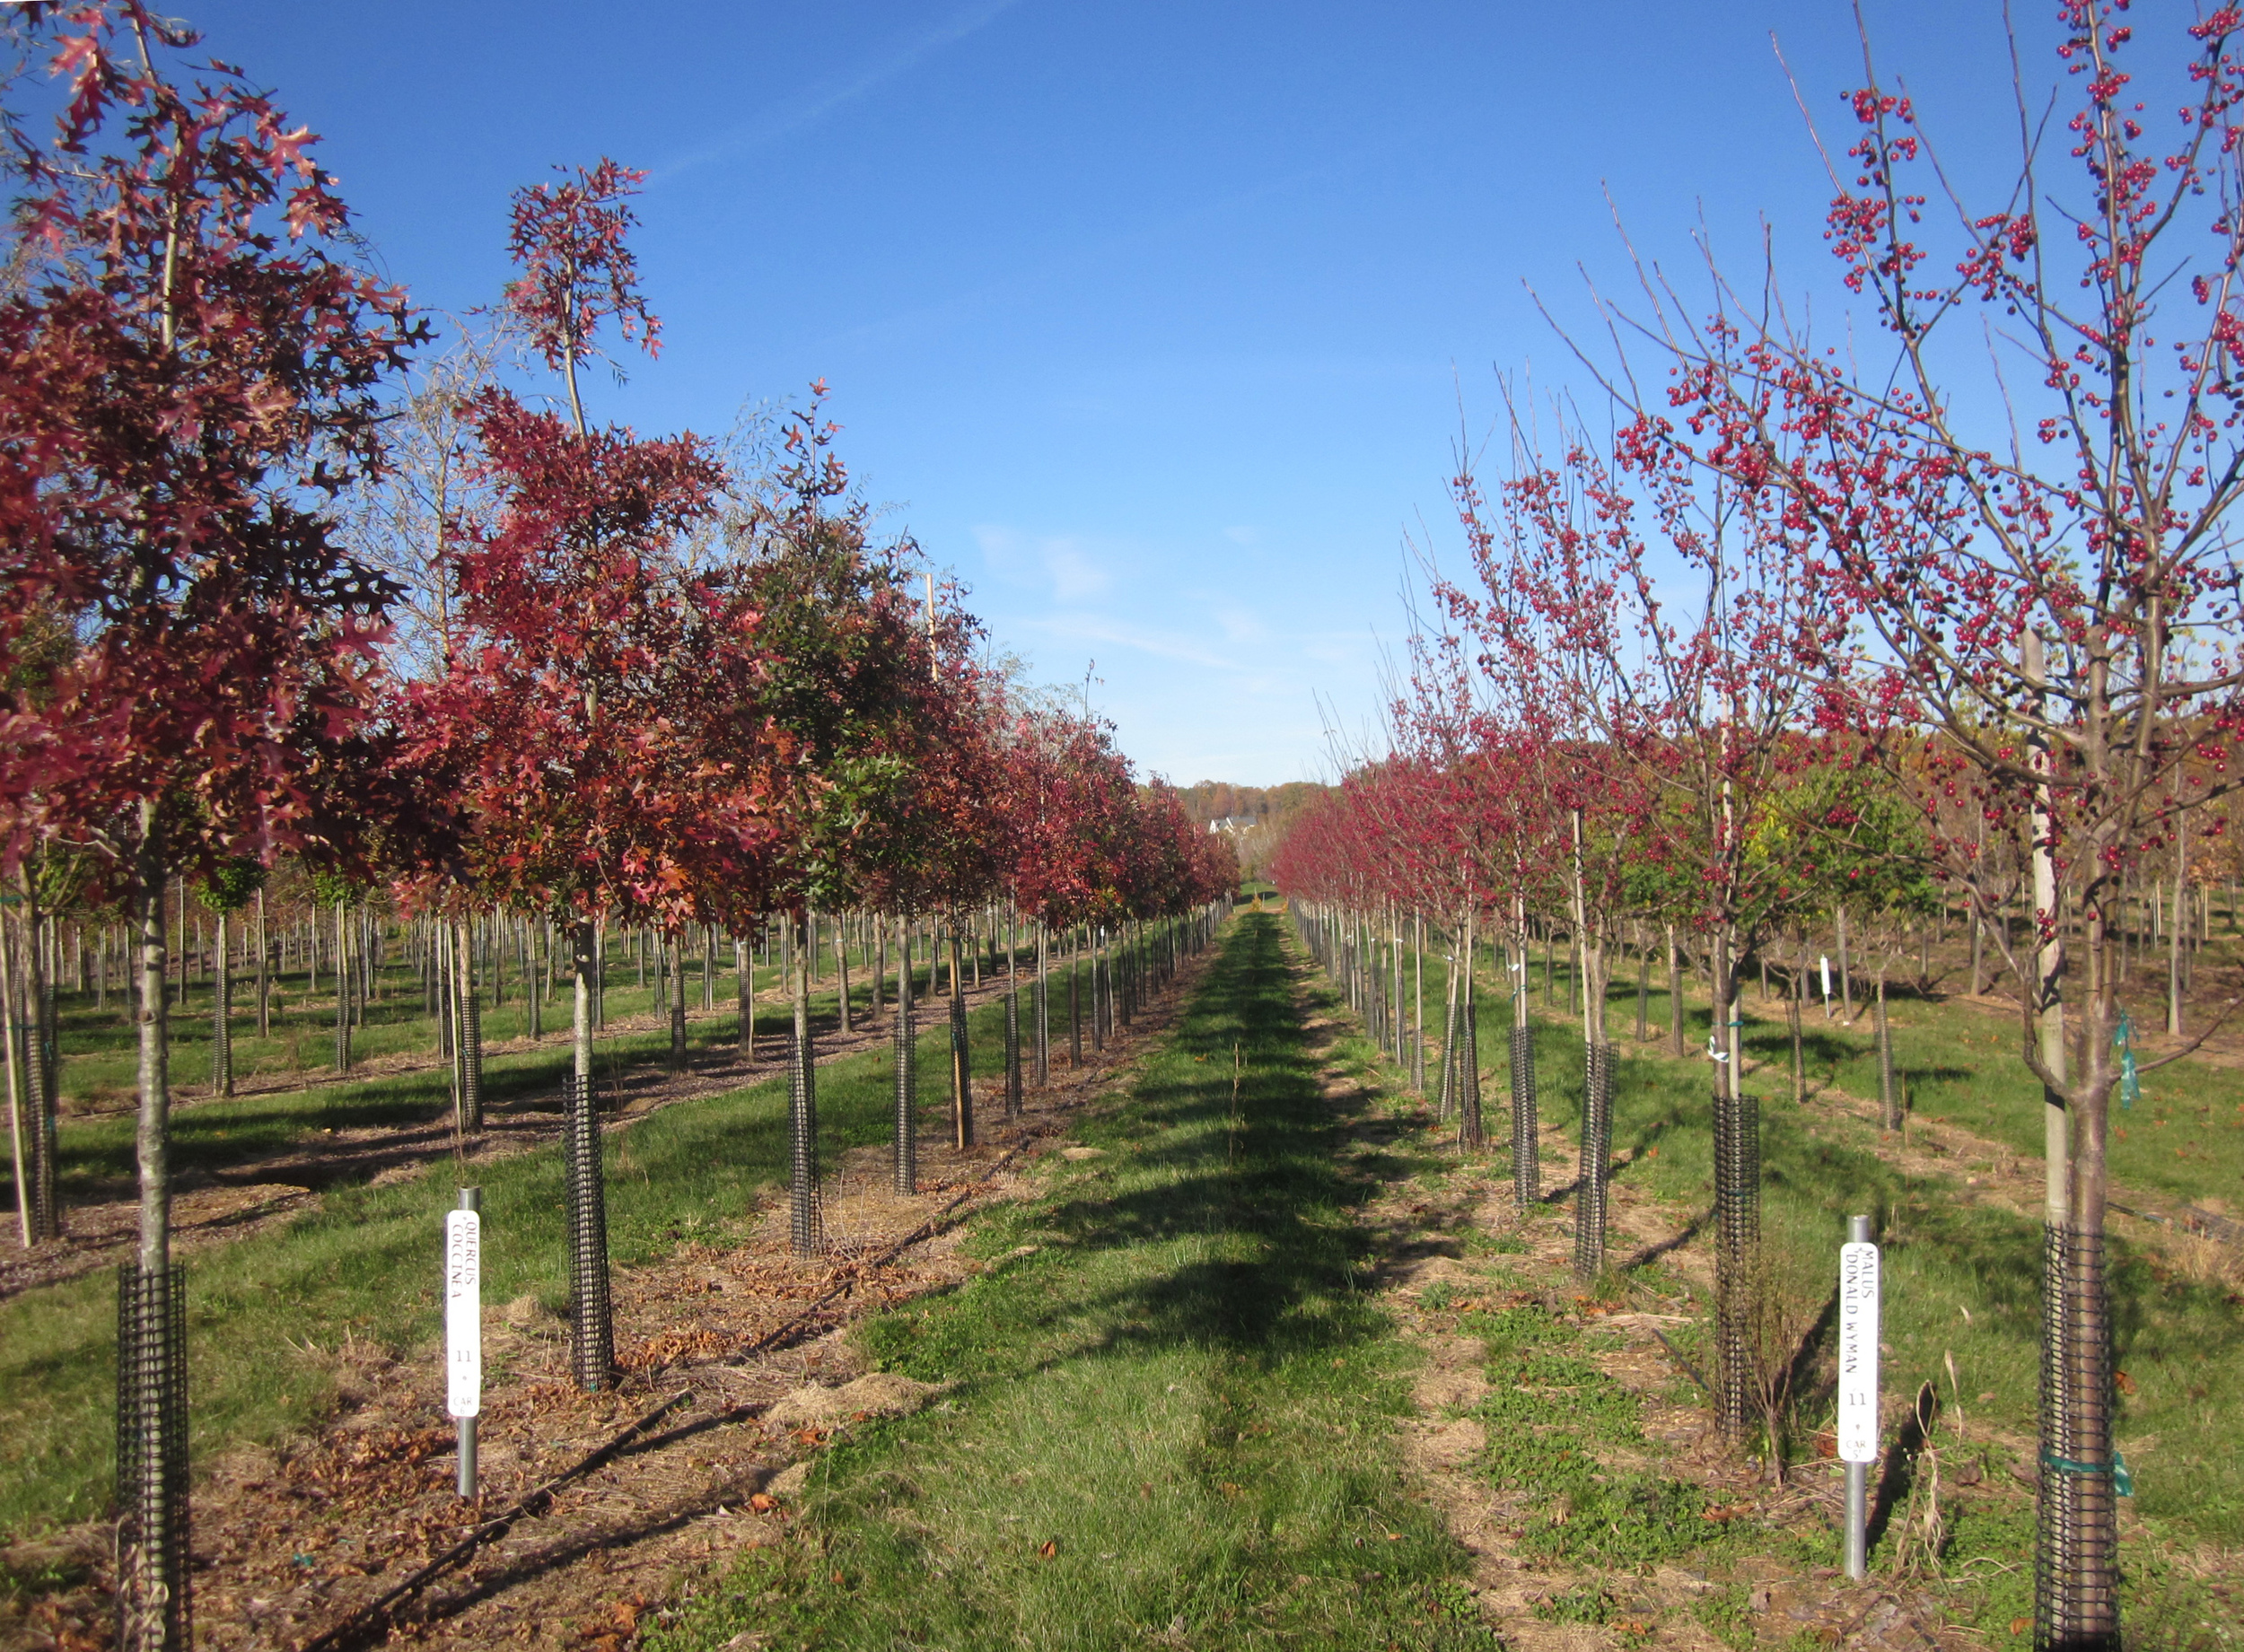 Fall color in the fields—young scarlet oaks and Donald Wyman crabapples.